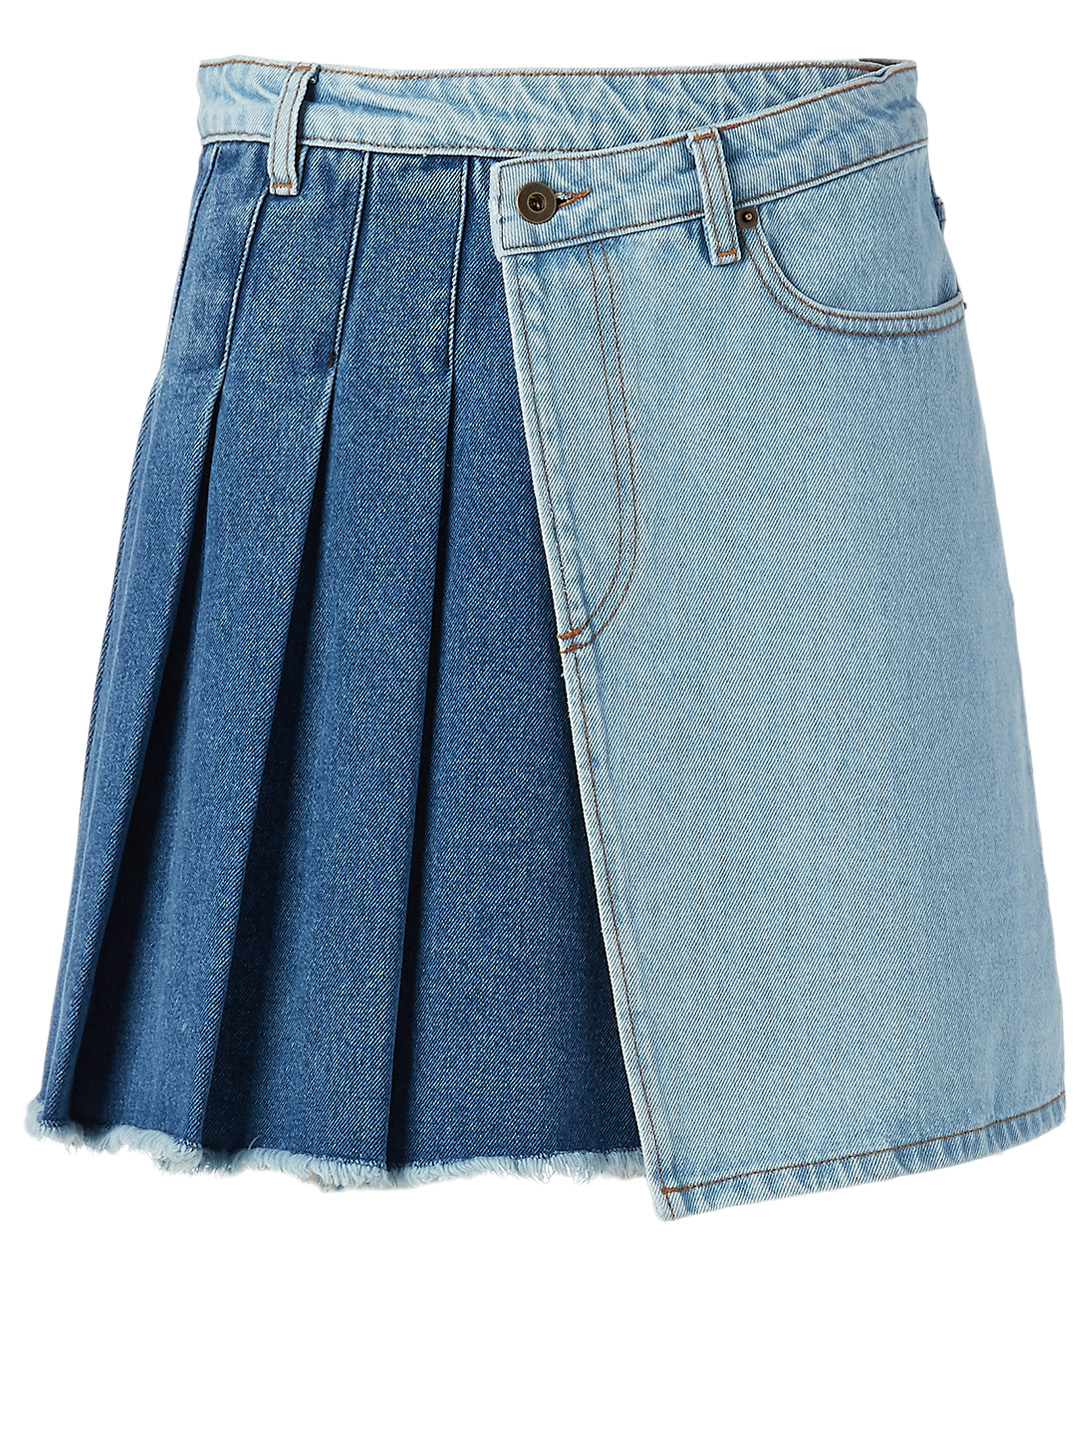 MCQ ALEXANDER MCQUEEN Maru Asymmetric Denim Skirt Women's Blue